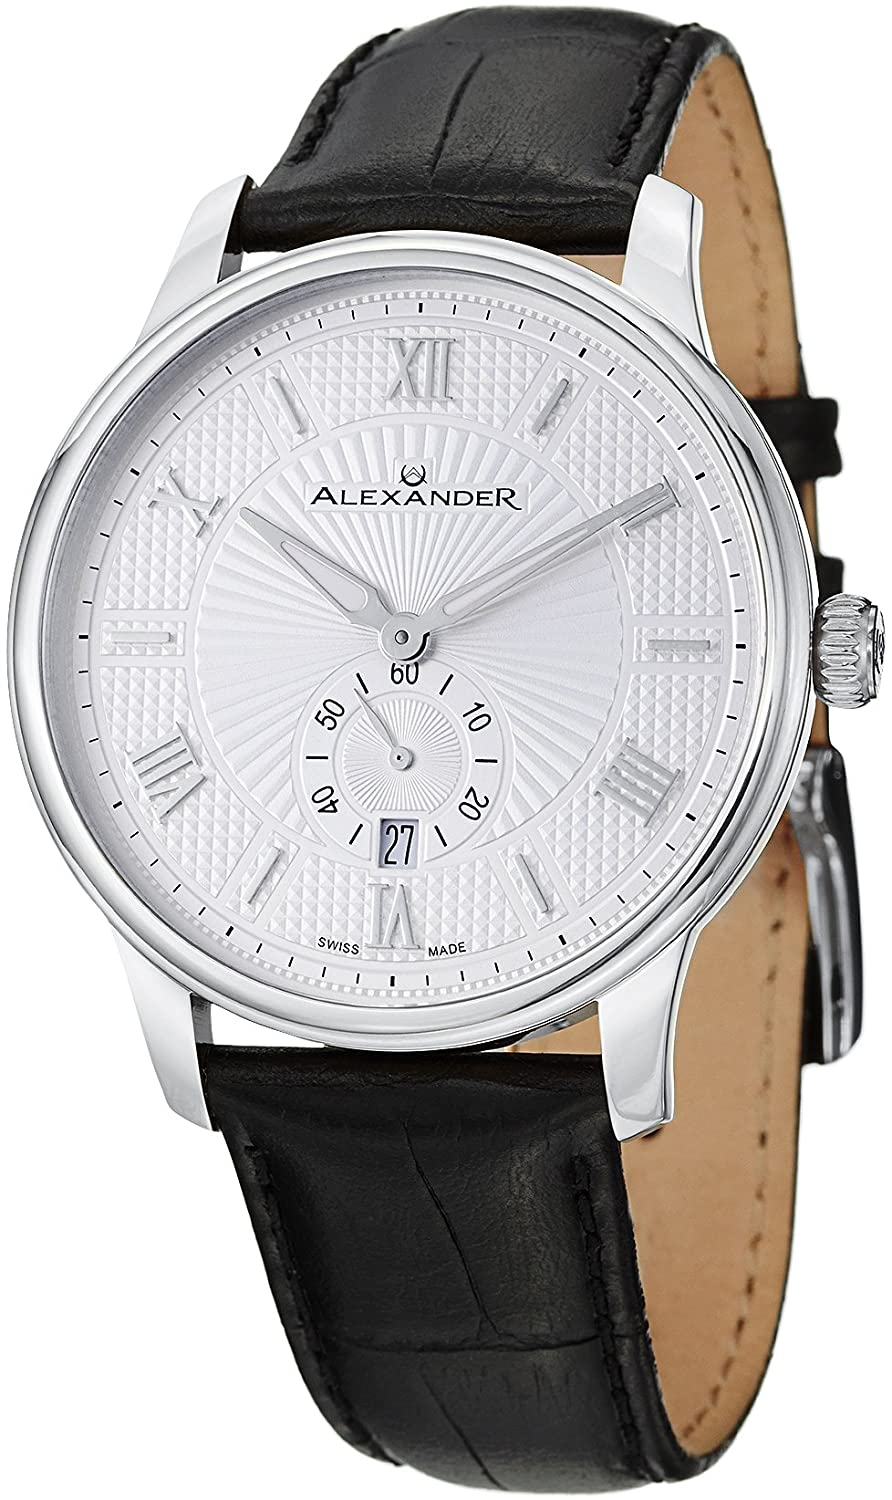 7042b7241ab Alexander Statesman Regalia Wrist Watch For Men - Black Leather Stainless  Steel Analog Swiss Watch - Silver White Dial Date Small Seconds Mens  Designer ...